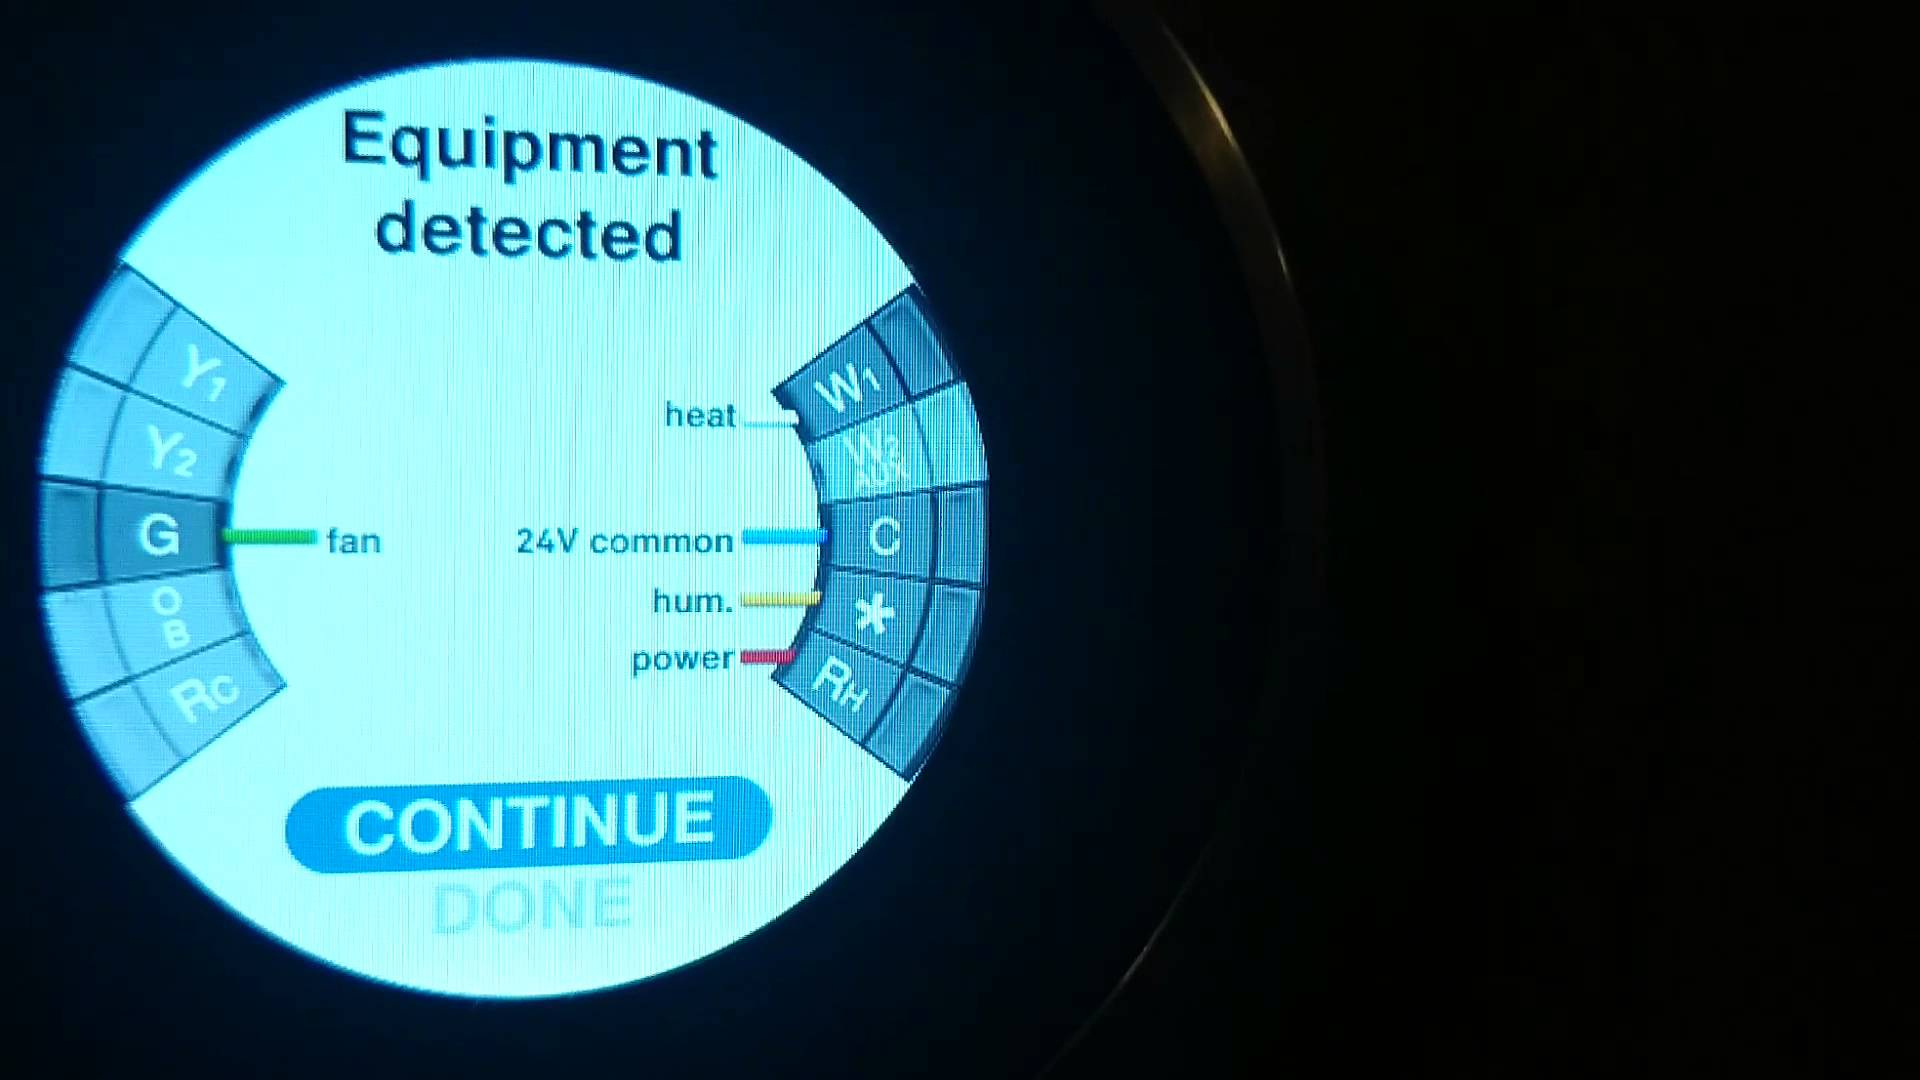 Setup Nest Thermostat Flowthrough Buypass Humidifiers Lyric - Nest Thermostat Wiring Diagram For Cooling